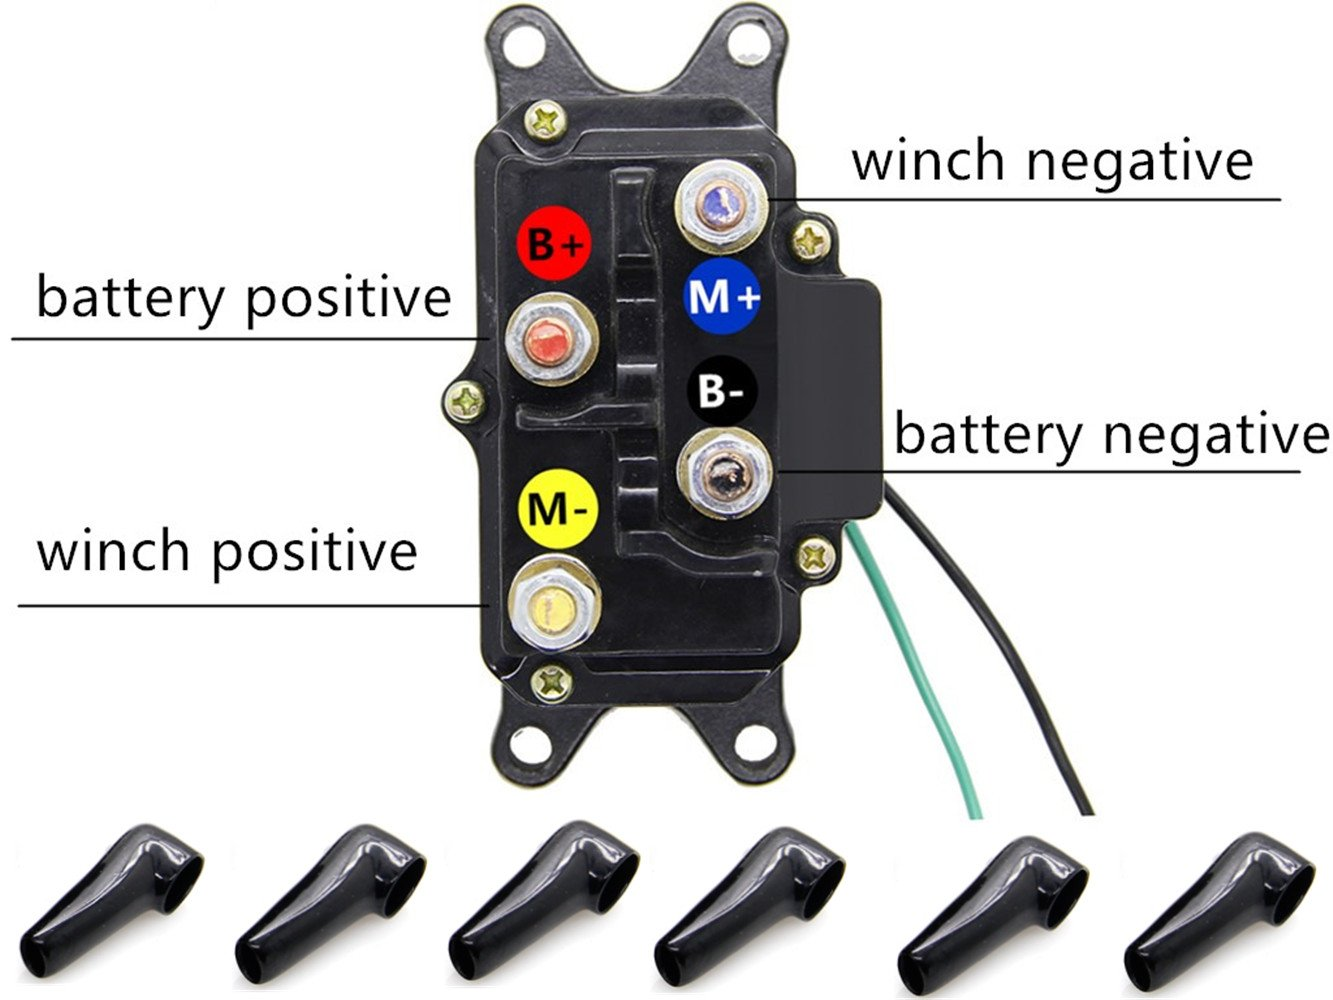 KONDUONE Universal 250A 12V Winch Solenoid Relay Contactor Thumb Truck with 6 Protecting Caps for 4x4 Vehicles ATV Polaris UTV Warn Winch Solenoid 62135 63070 74900 2875714 70715